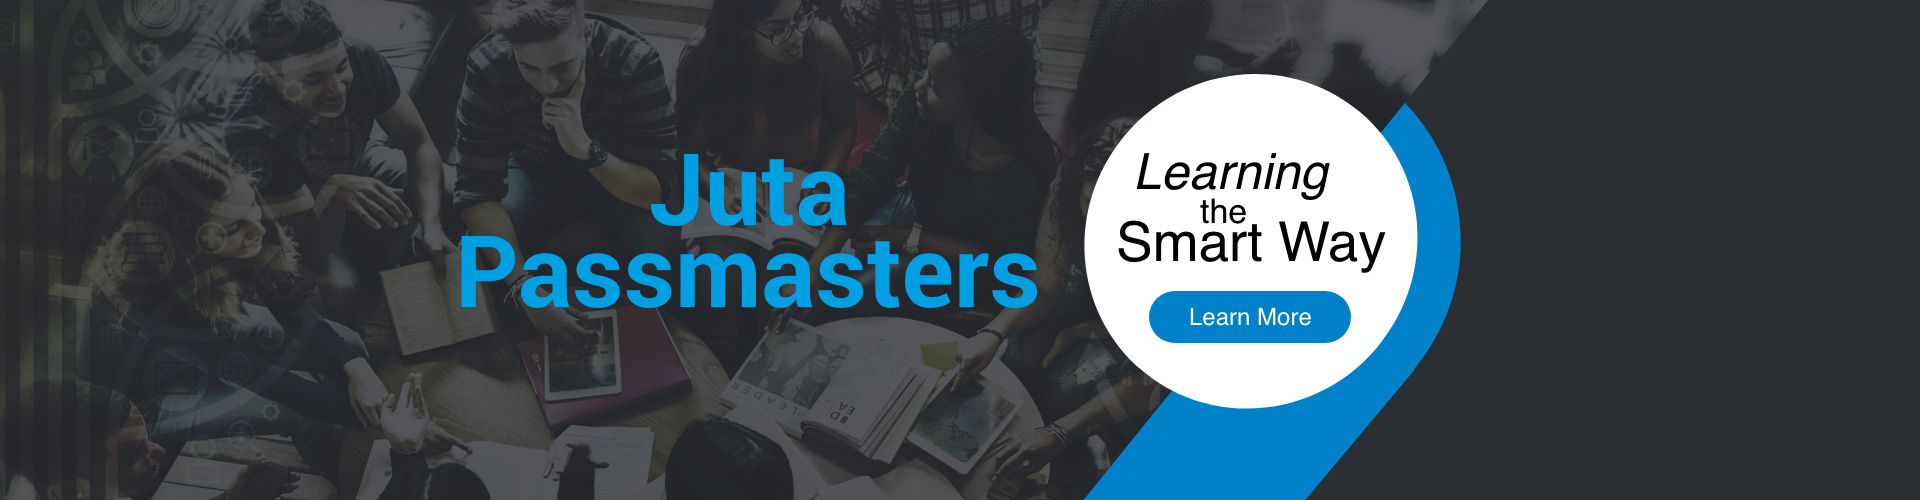 Juta Passmasters - Learning the Smart Way